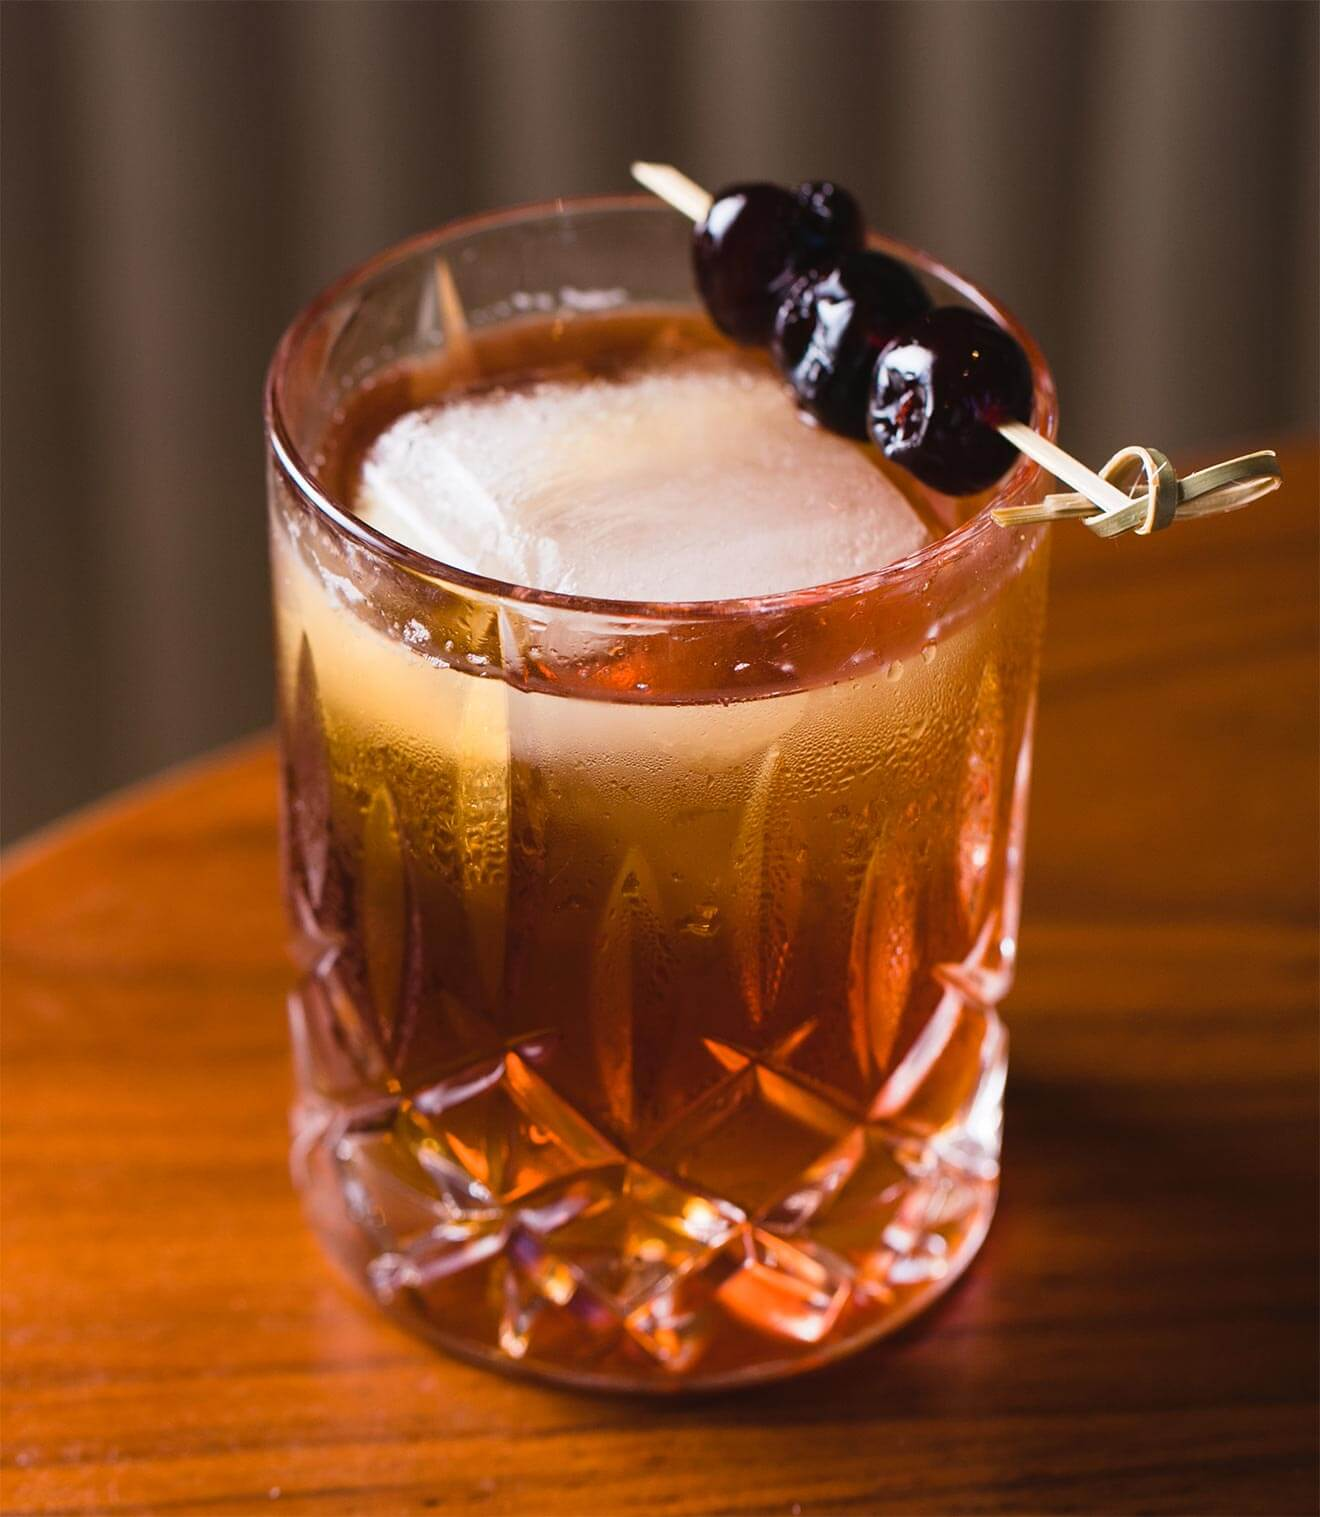 Journey Into Night cocktail with garnish